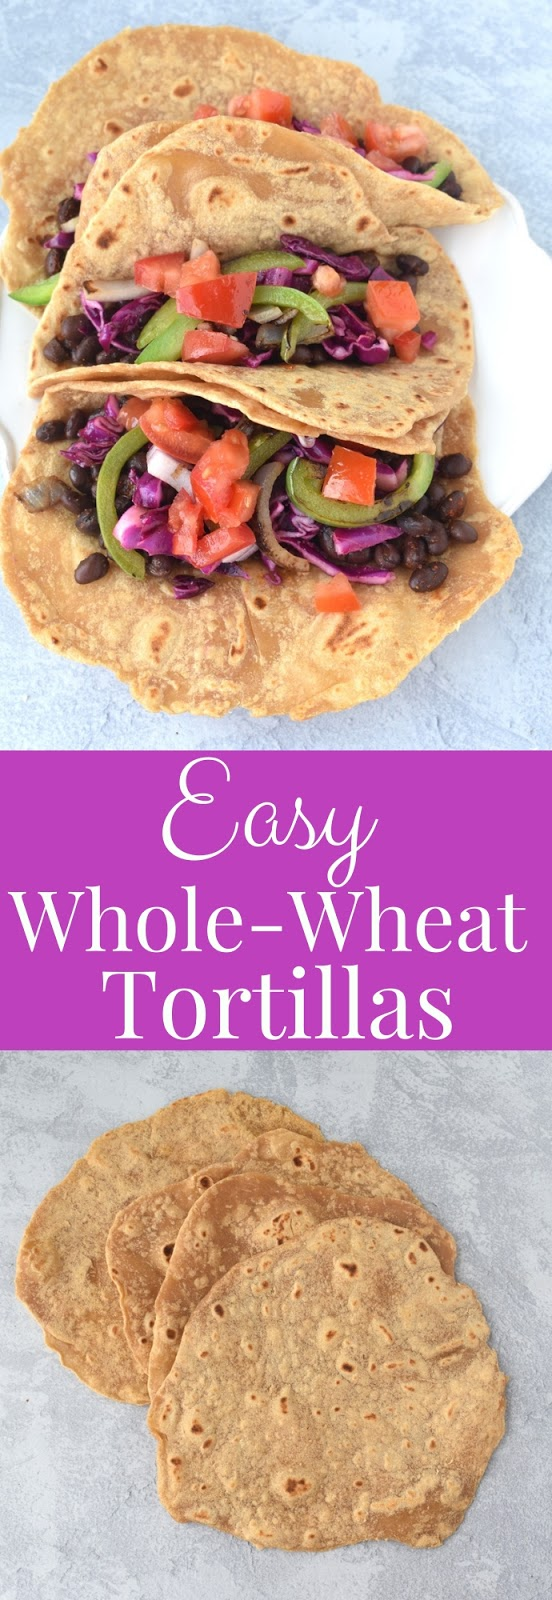 Easy 3-Ingredient Whole-Wheat Tortillas